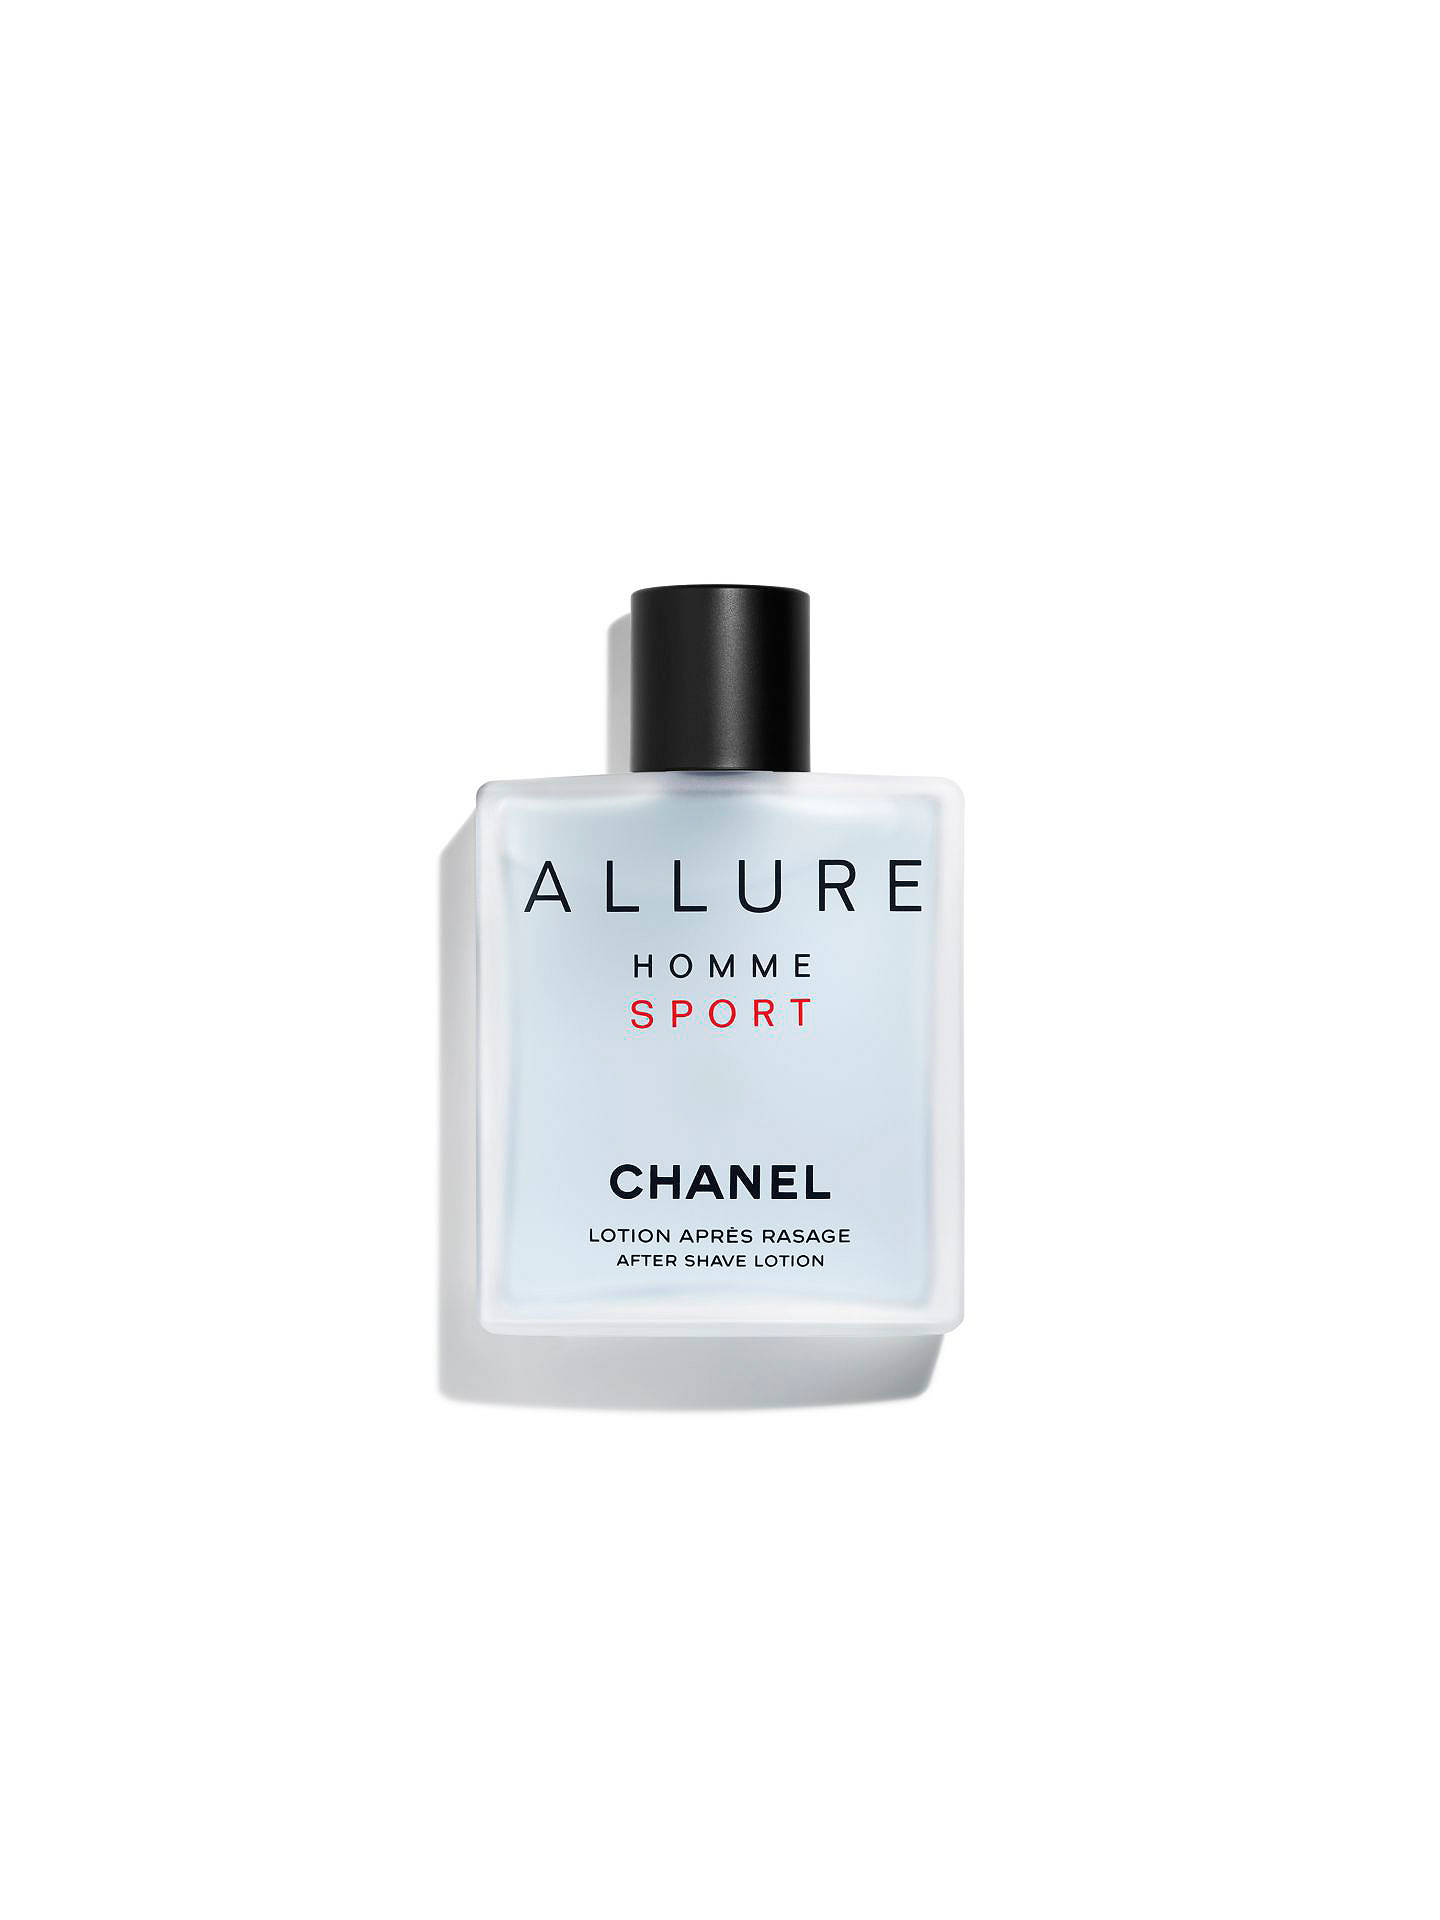 9256963e11e2 Buy CHANEL ALLURE HOMME SPORT After-Shave Lotion, 100ml Online at  johnlewis.com